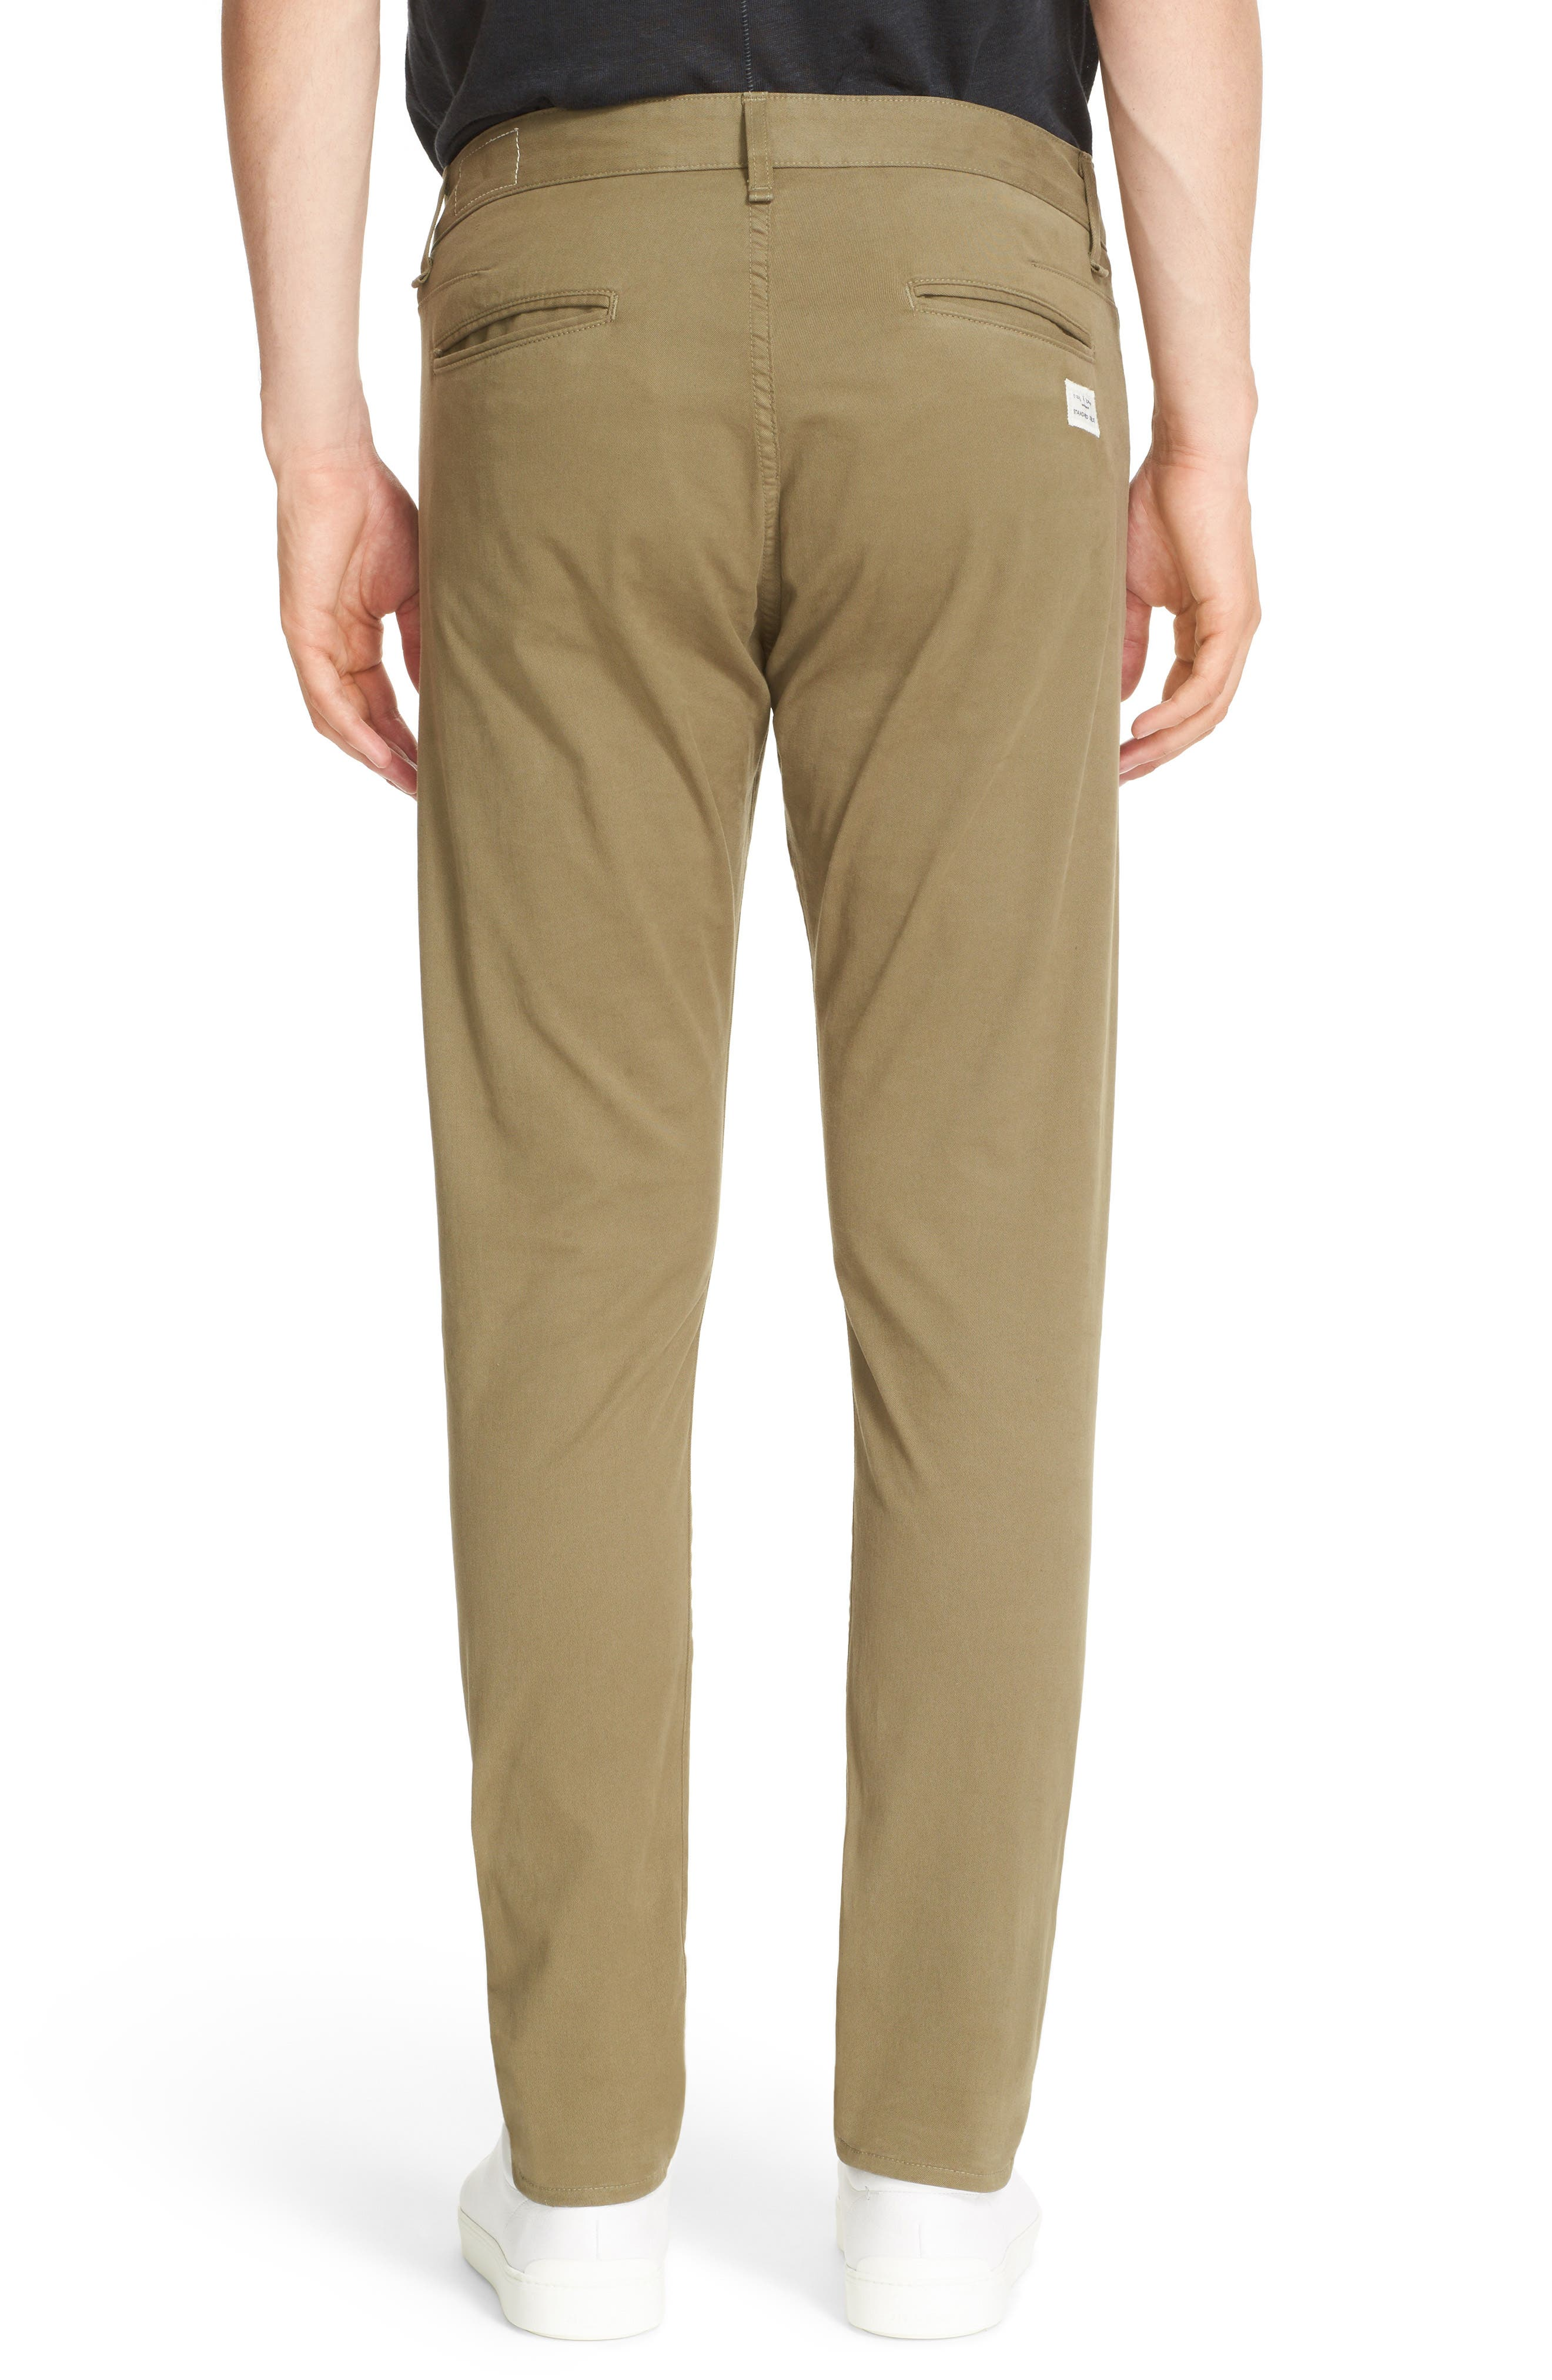 Fit 1 Chinos,                             Alternate thumbnail 2, color,                             ARMY GREEN